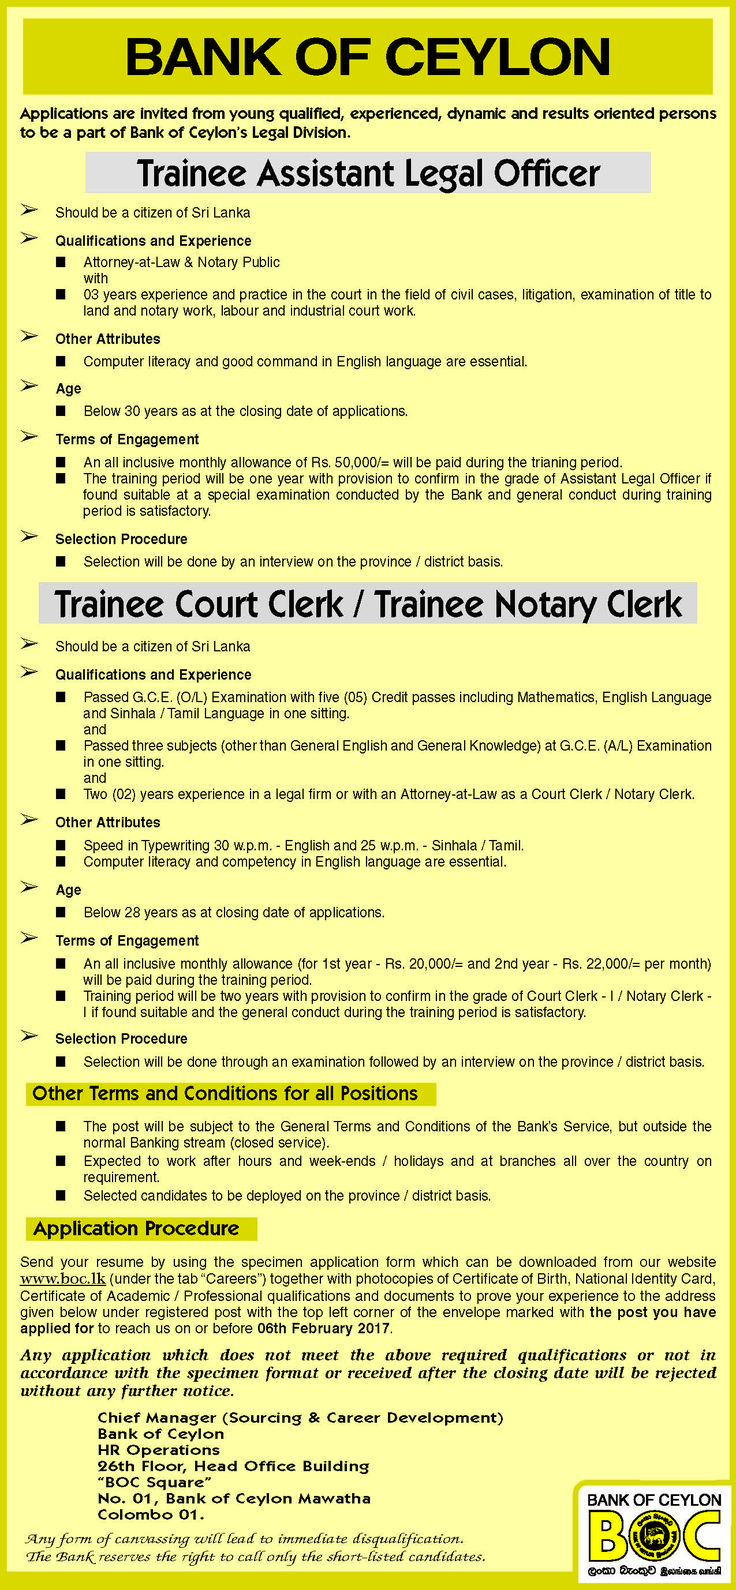 Trainee Assistant Legal Officer / Trainee Court Clerk / Trainee Notary Clerk at Bank of Ceylon | Career First